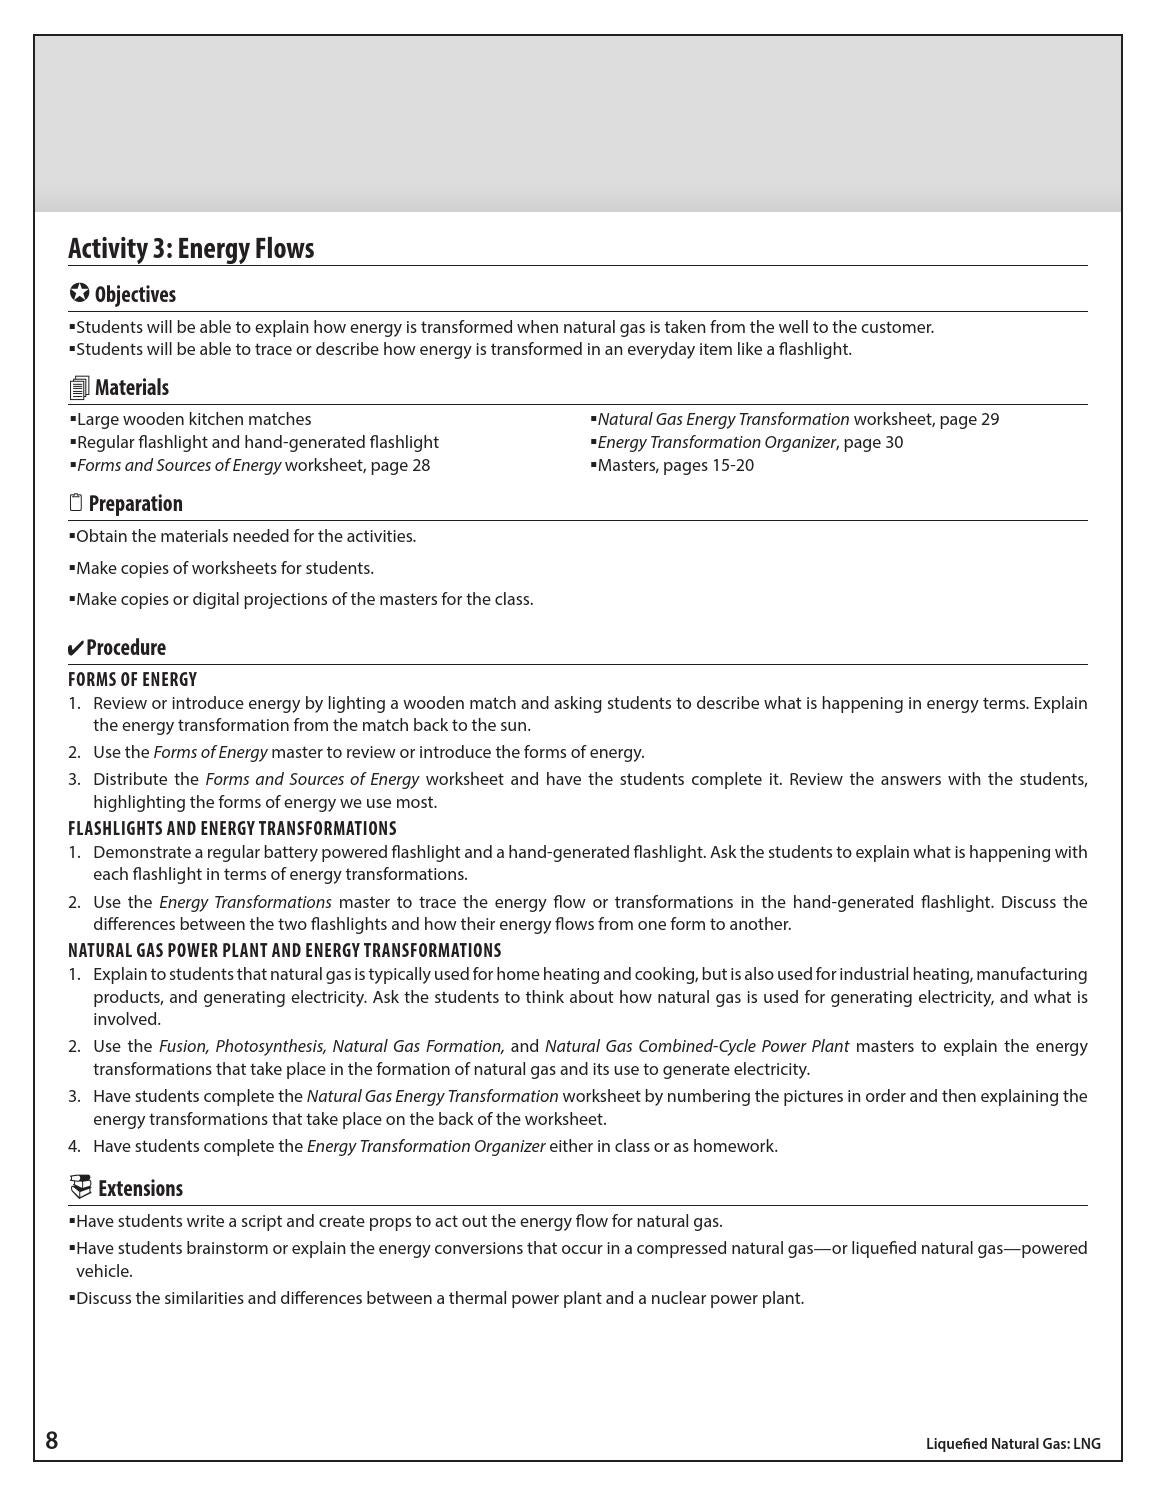 Energy Transformations Worksheet Answers - The Best and ...